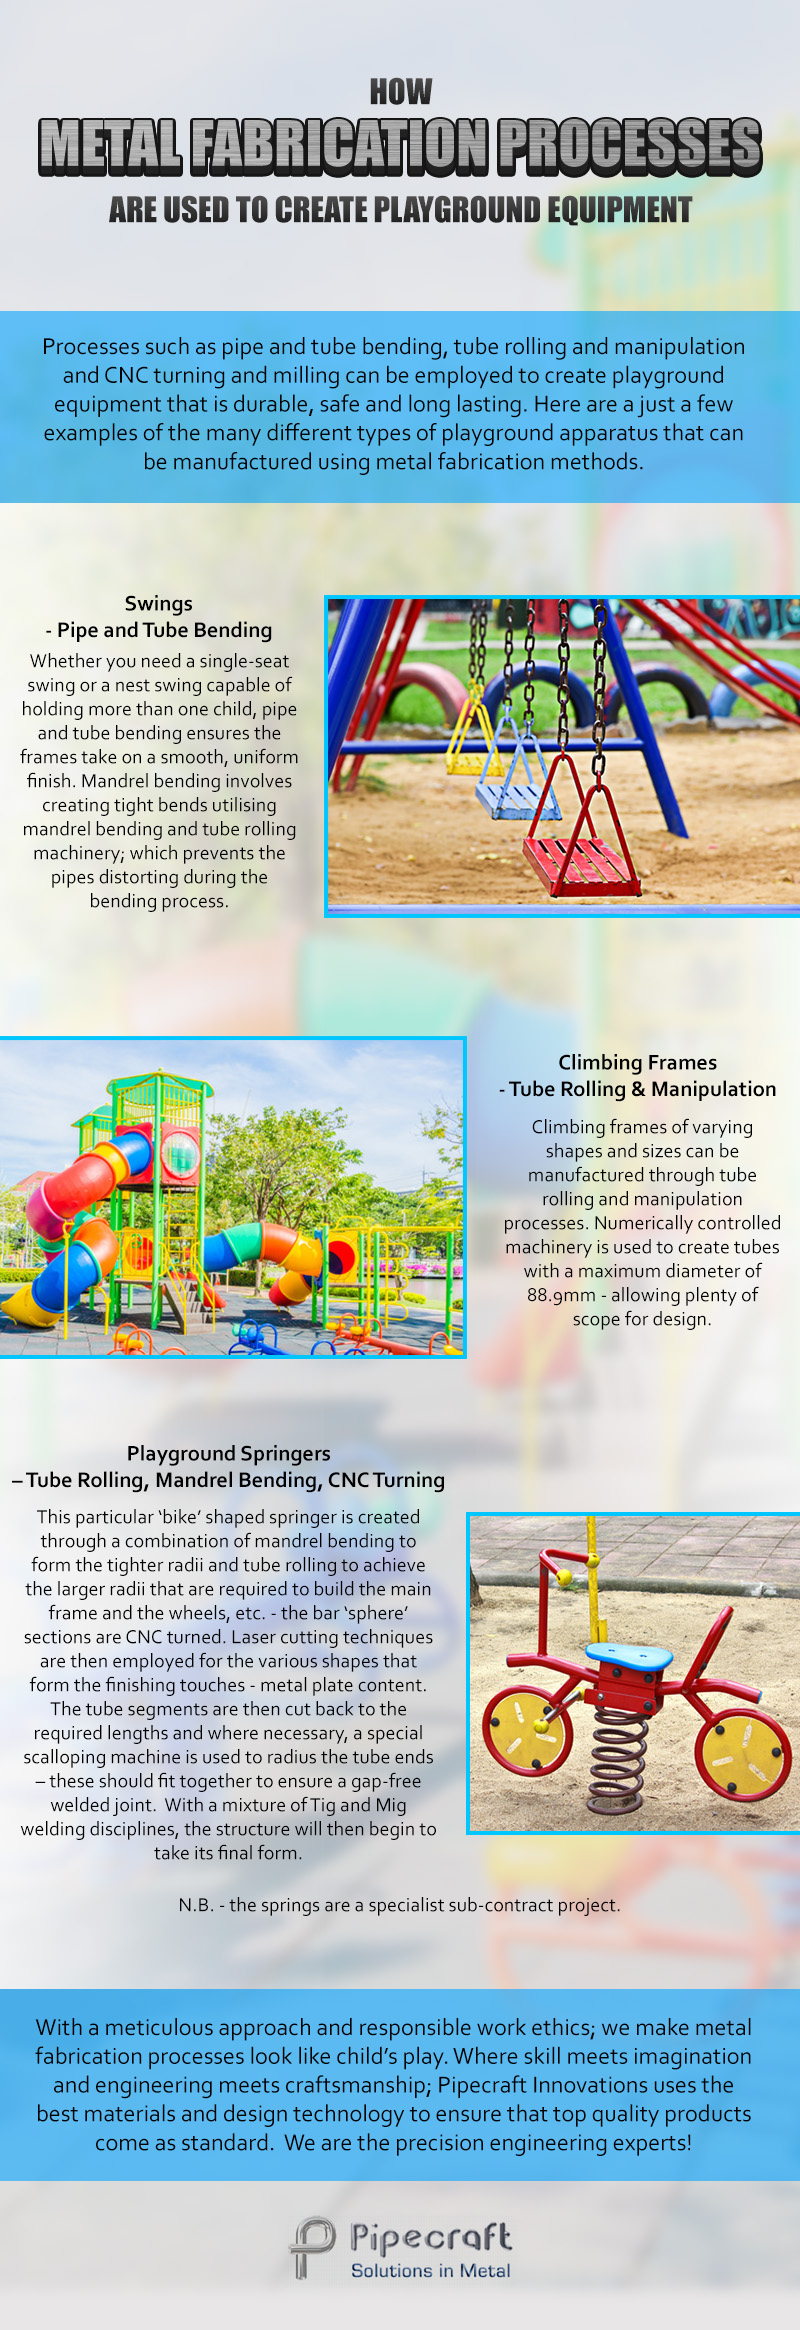 how playground equipment is made with metal fabrication infographic